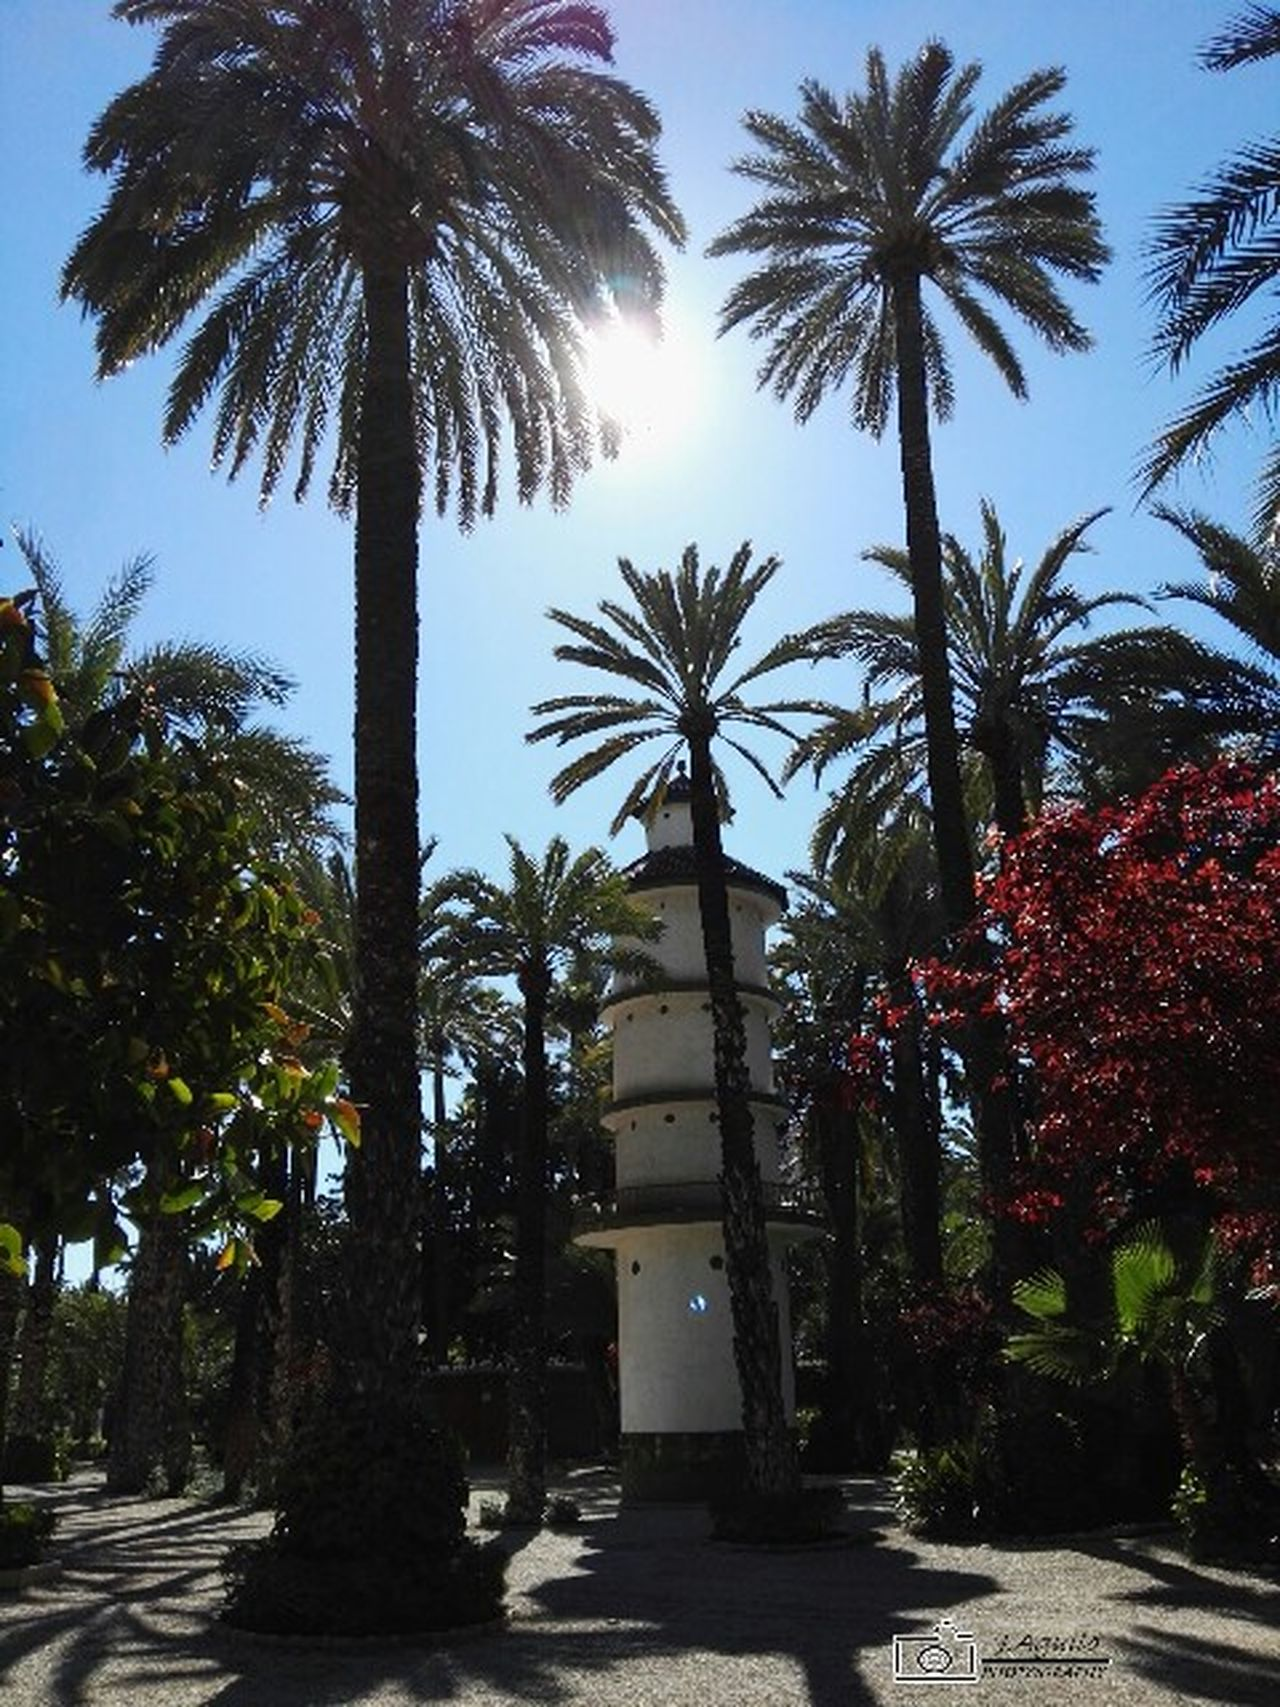 Tree Palm Tree Growth No People Nature Outdoors Sky Built Structure Building Exterior Green Color Day Beauty In Nature Architecture elche